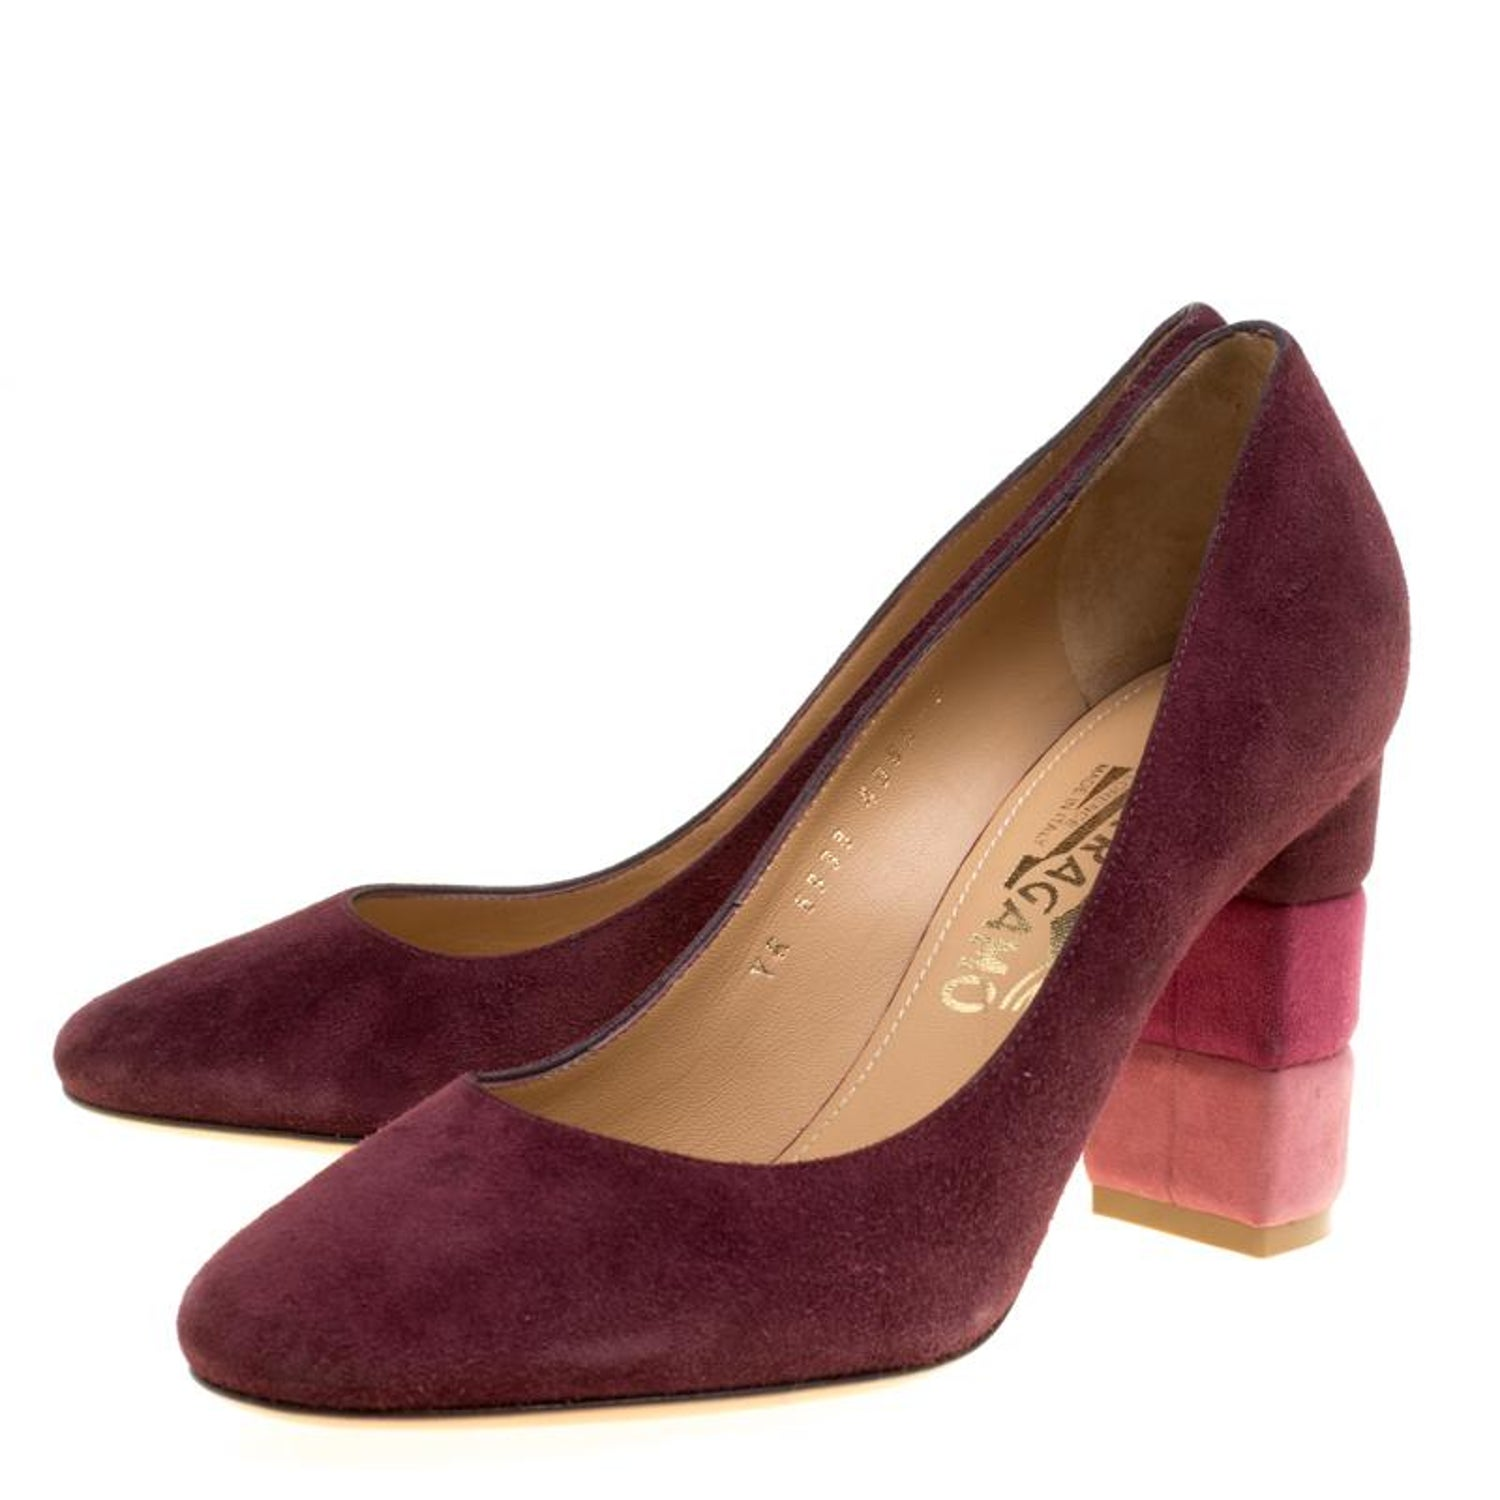 5ad27ed7f5b Salvatore Ferragamo Burgundy Suede Madia Block Heel Pumps Size 37 For Sale  at 1stdibs